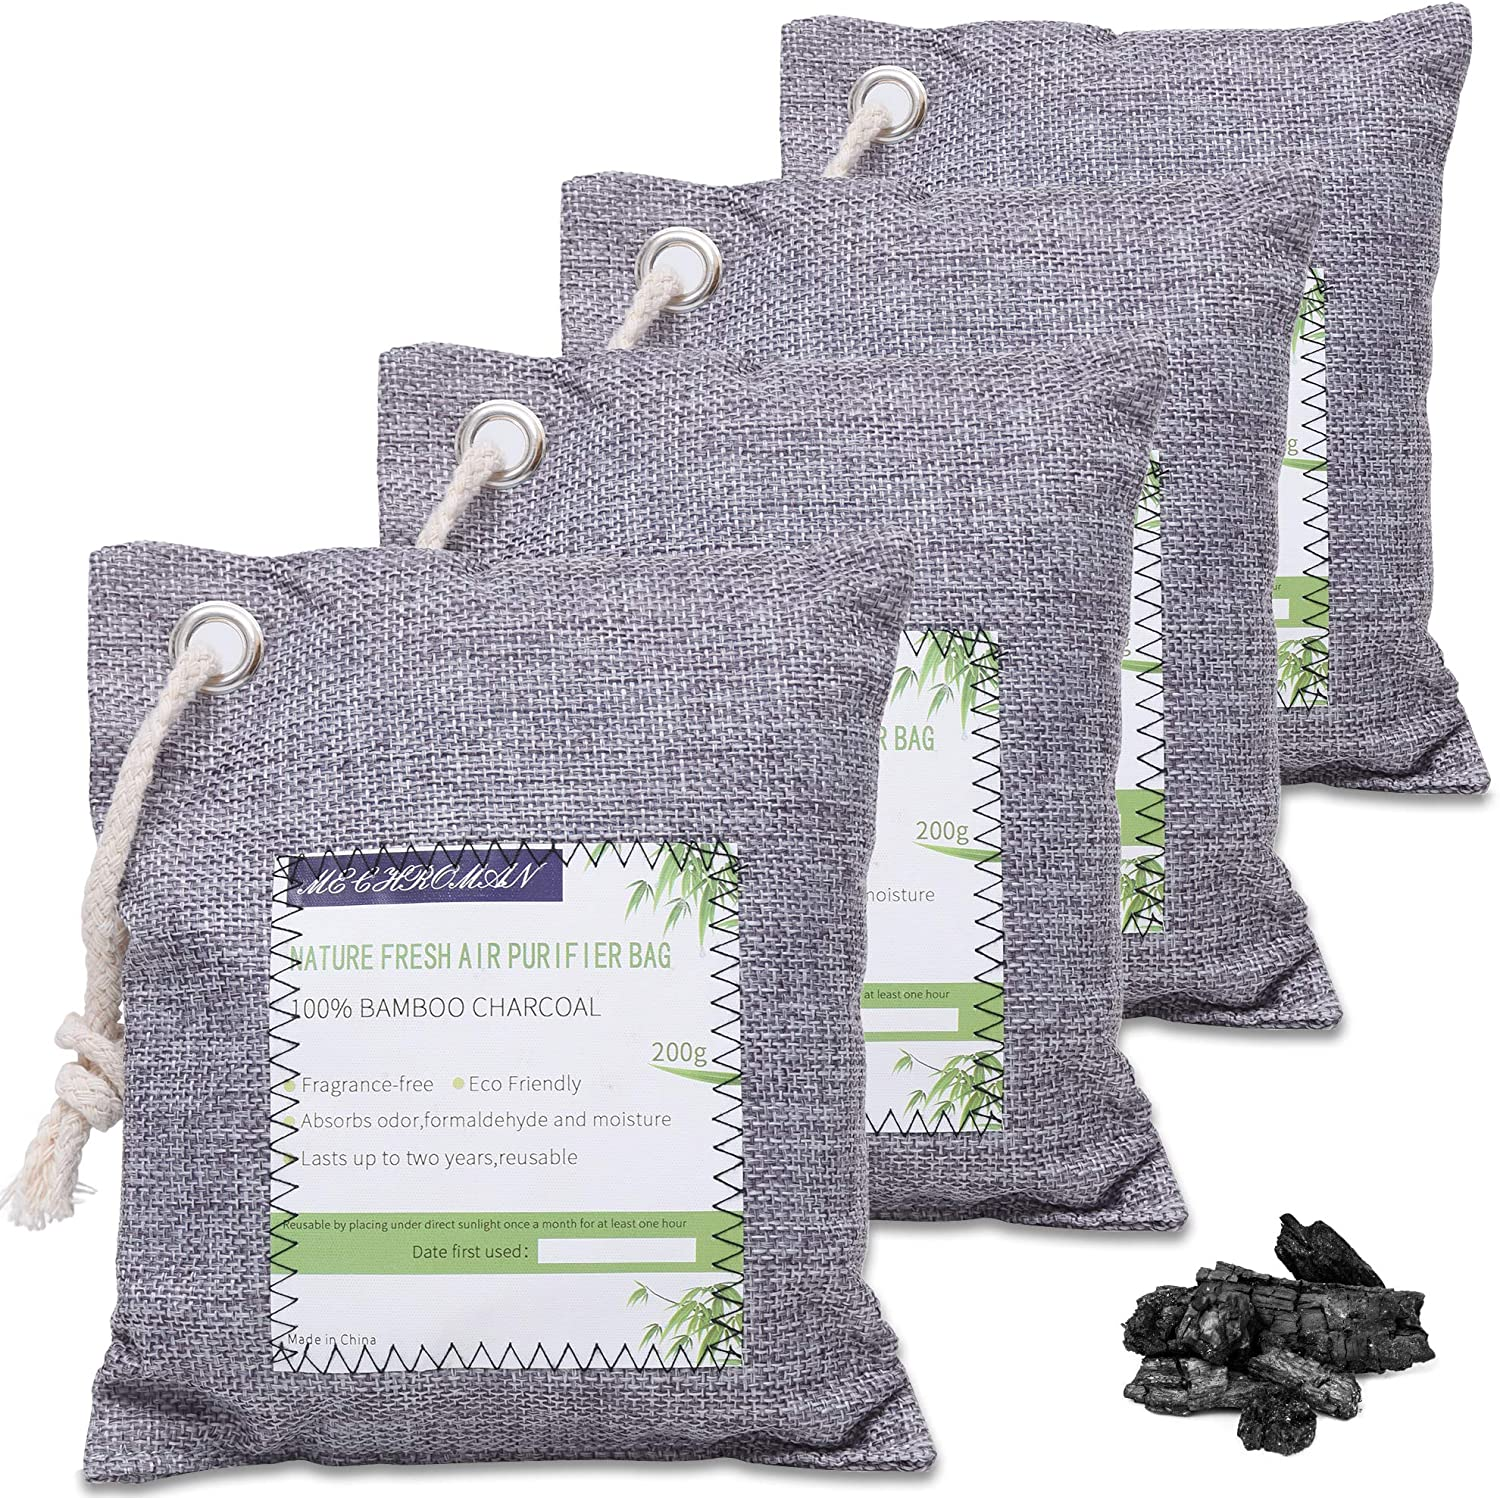 4 Pack of 200g Charcoal Air Purifying Bags Just $9.99 (Reg. $19.99)